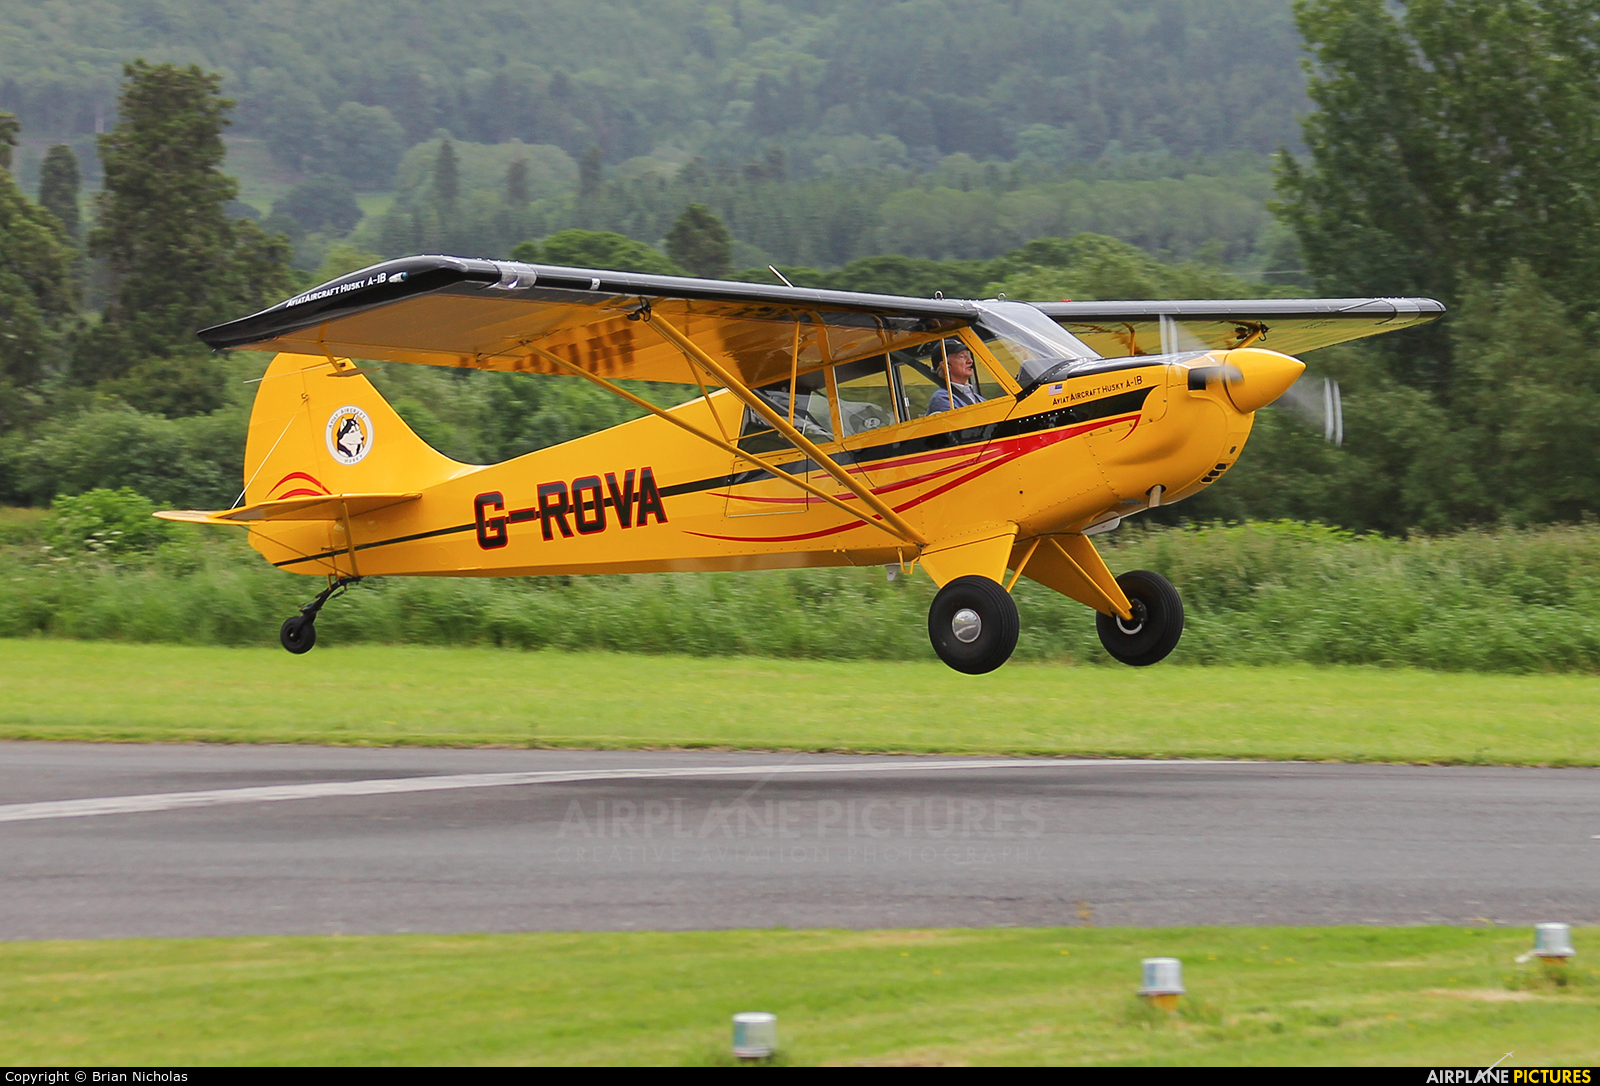 Private G-ROVA aircraft at Welshpool